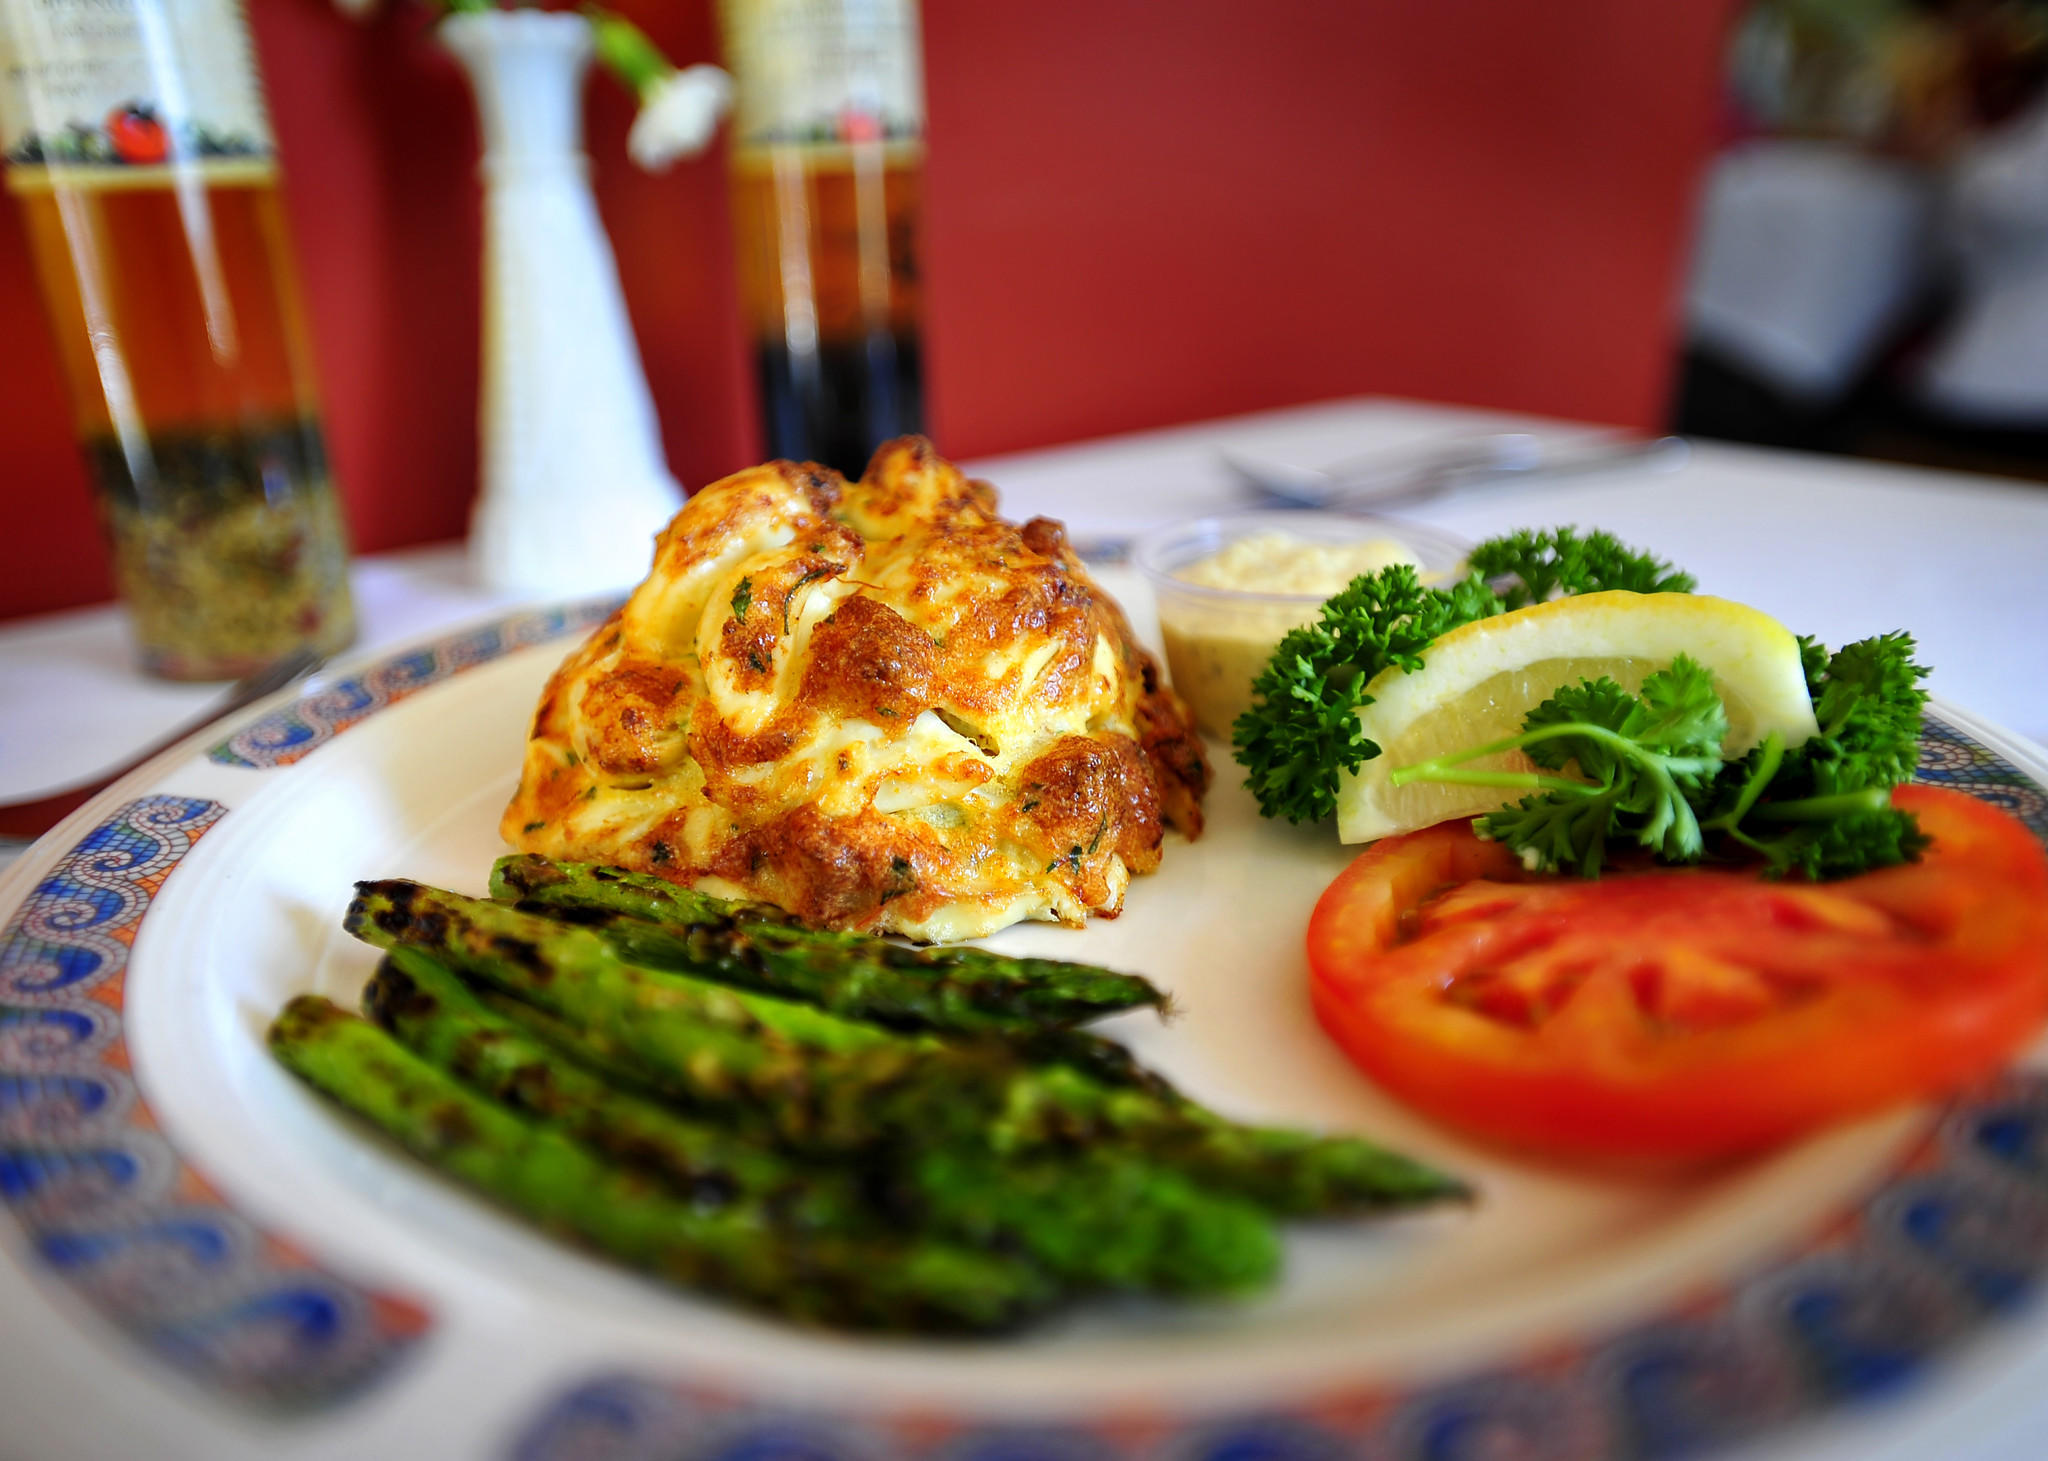 Pappas' Famous Crabcake served with grilled asparagus and lemon, tomato, and parsley to garnish.